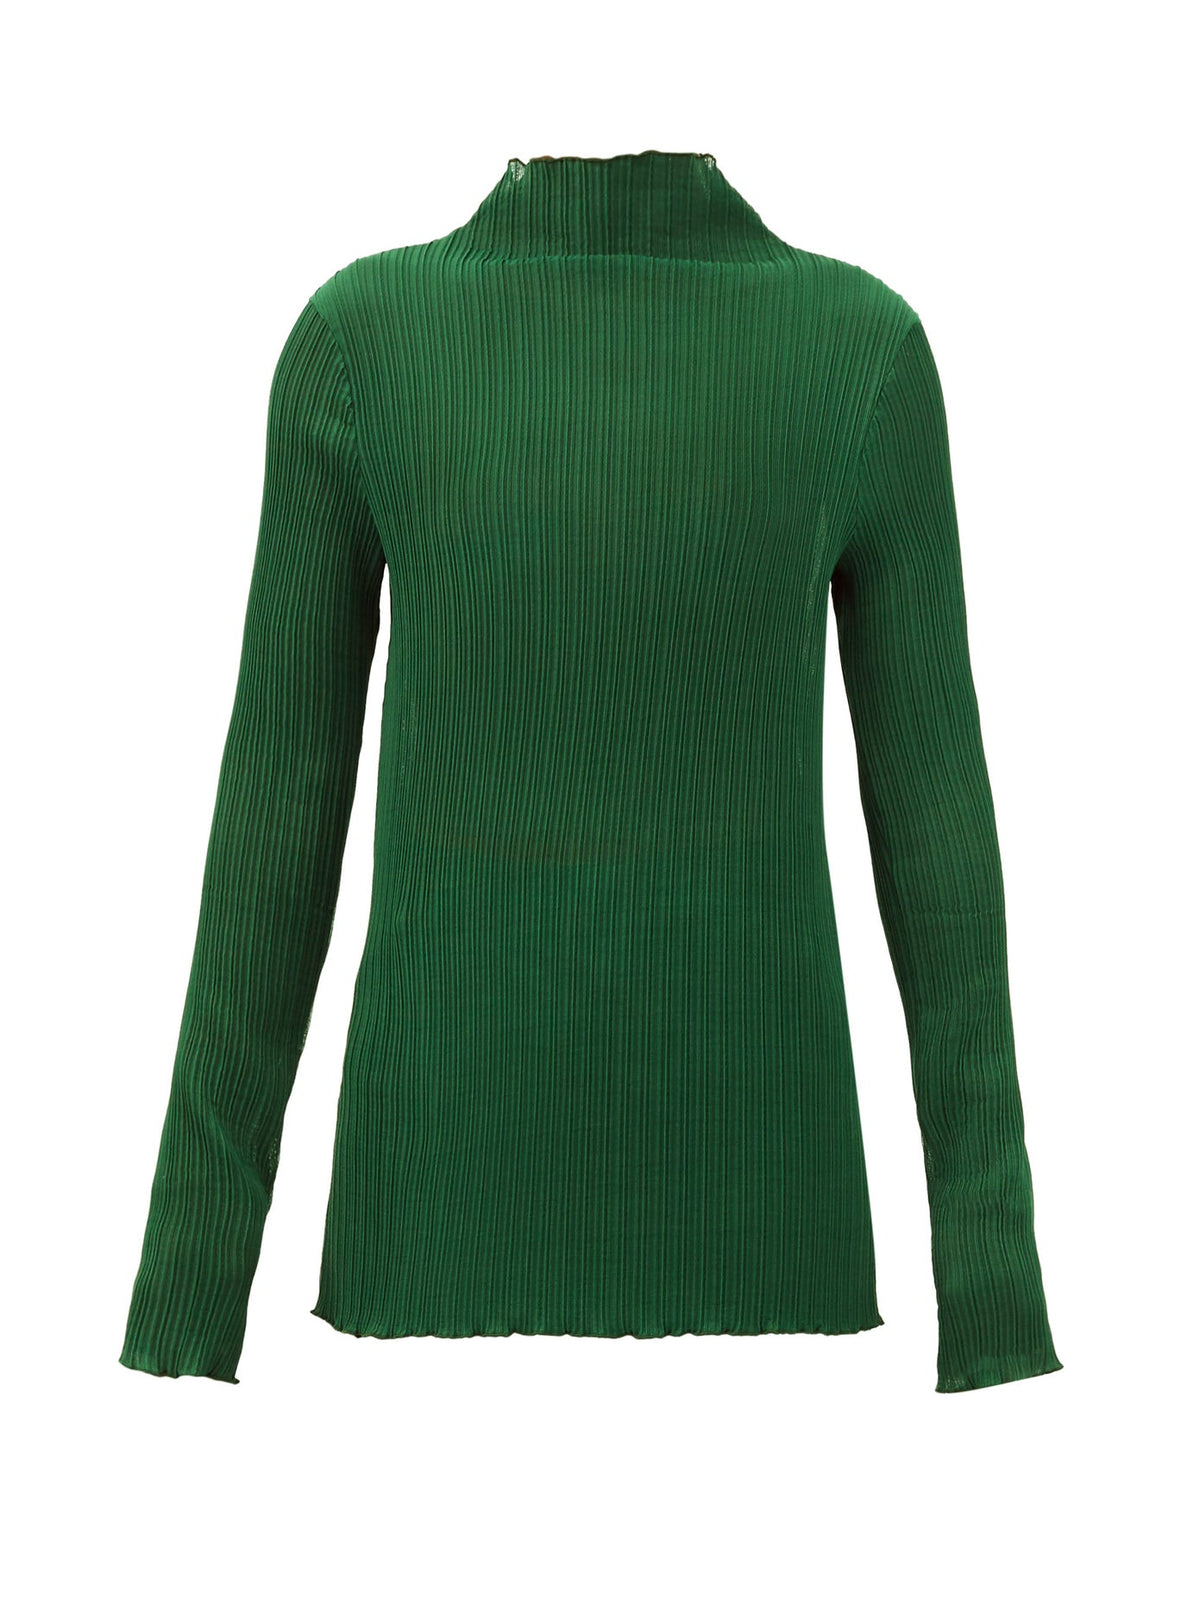 Ribbed Jersey High Neck Top | Green